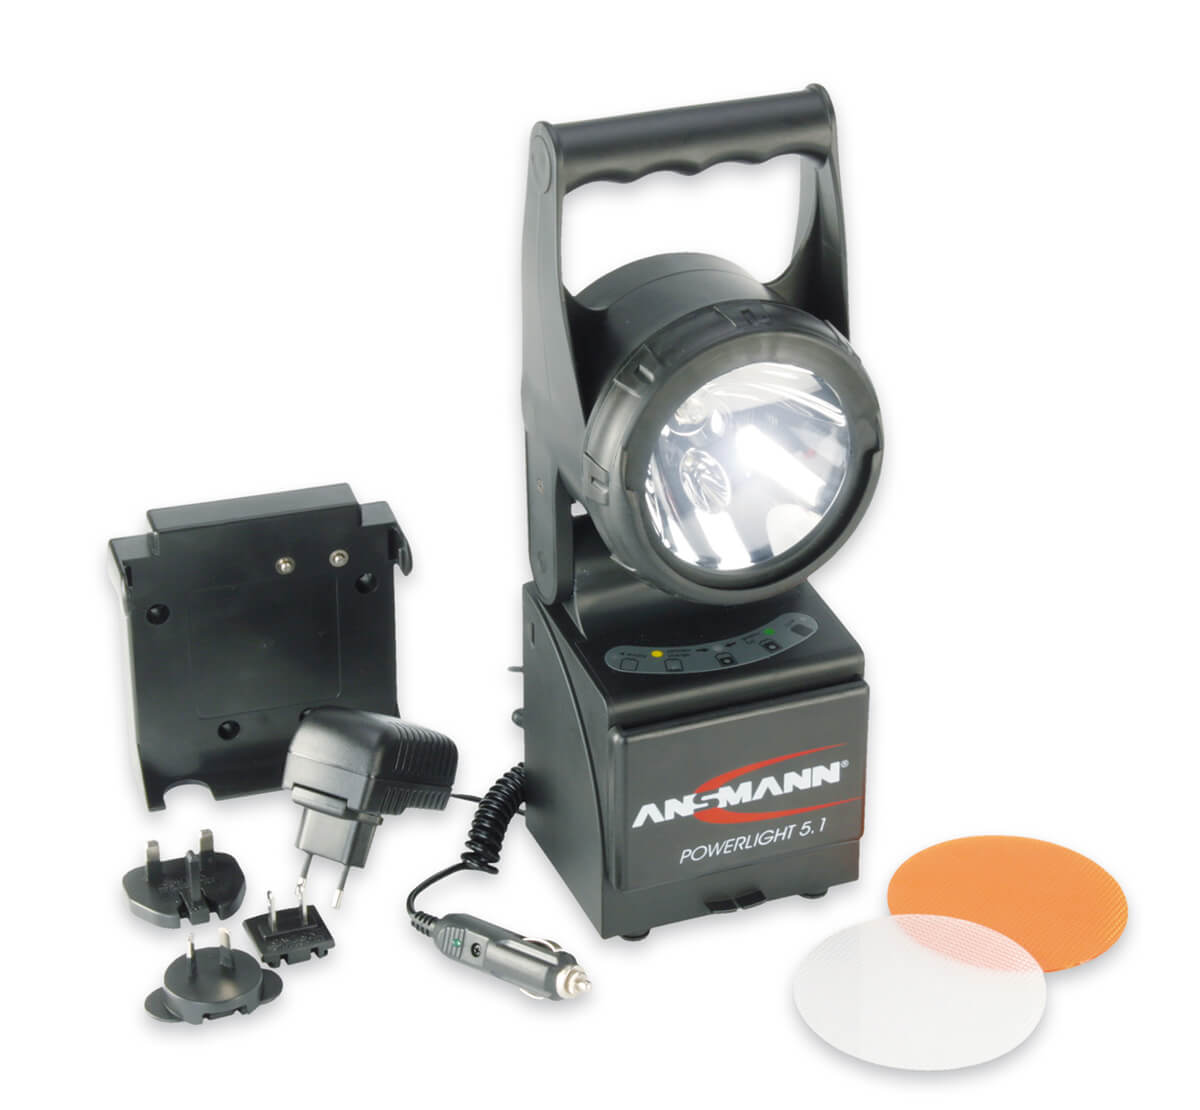 Ansmann Power Light 5.1 Rechargeable Lantern